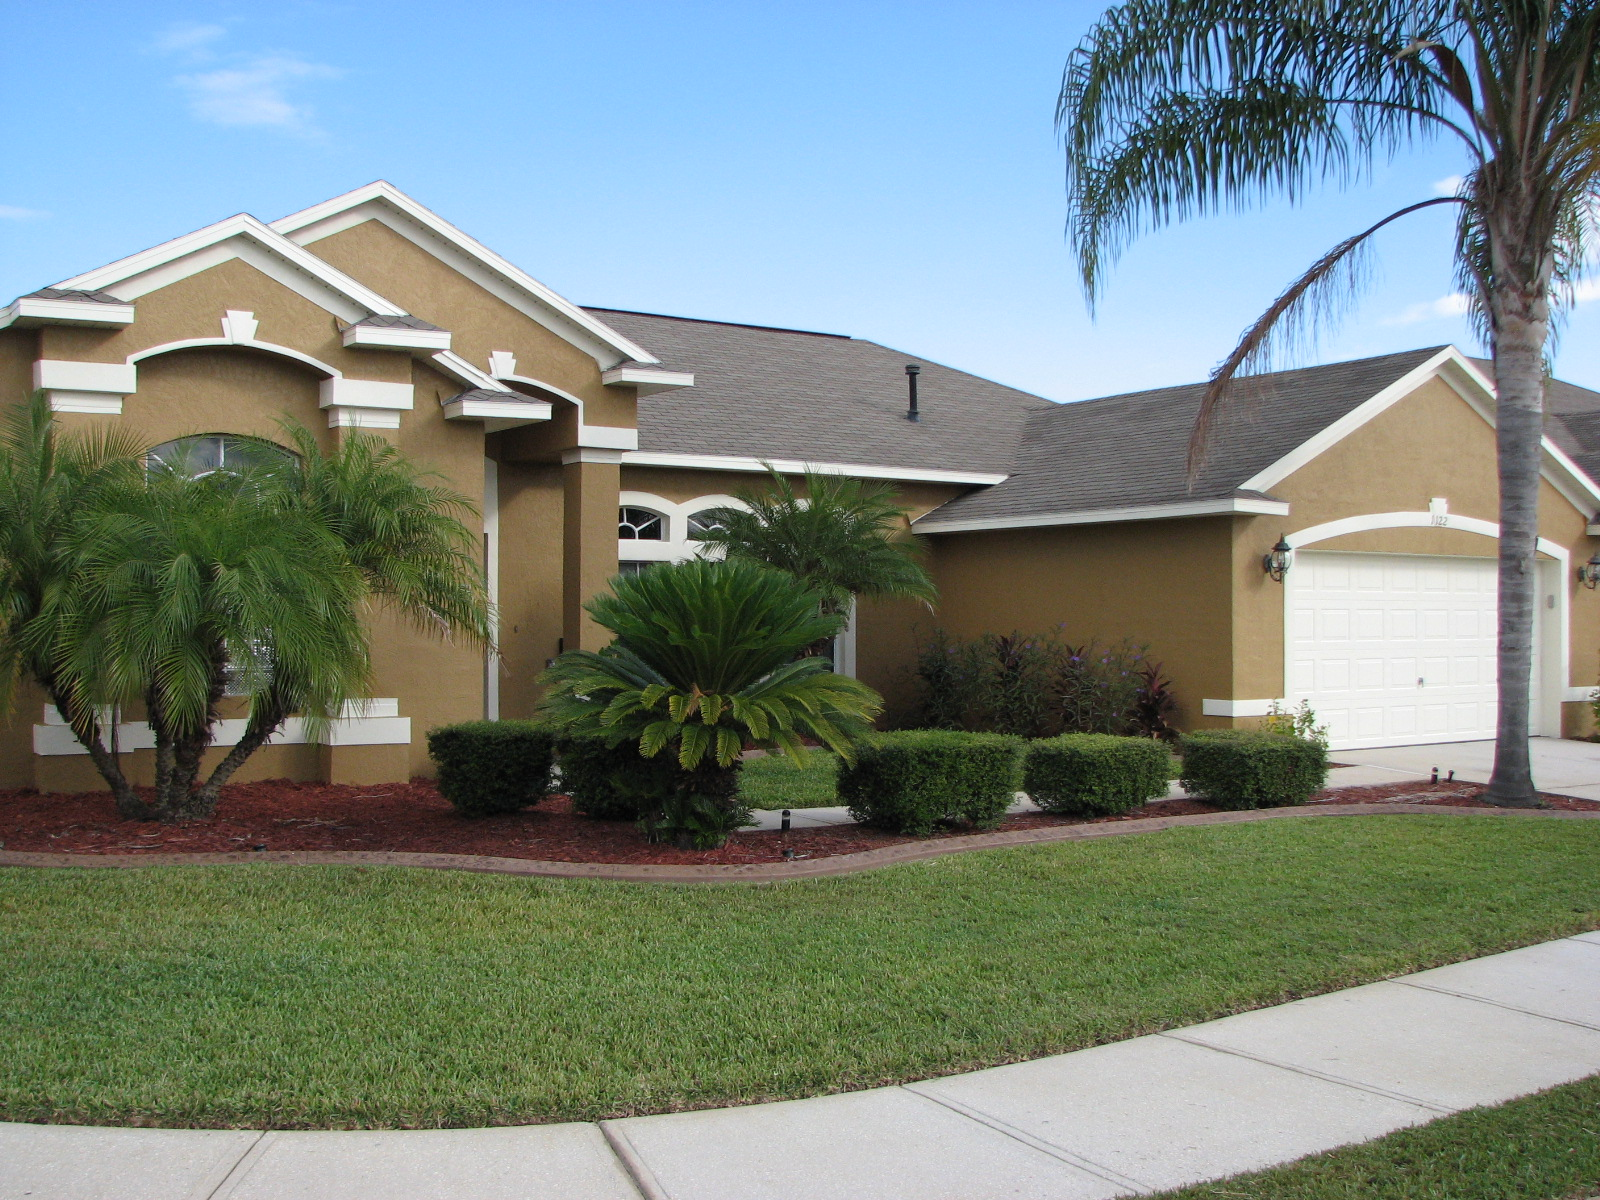 Chalky and faded paint house painting project in melbourne fl Best home paint